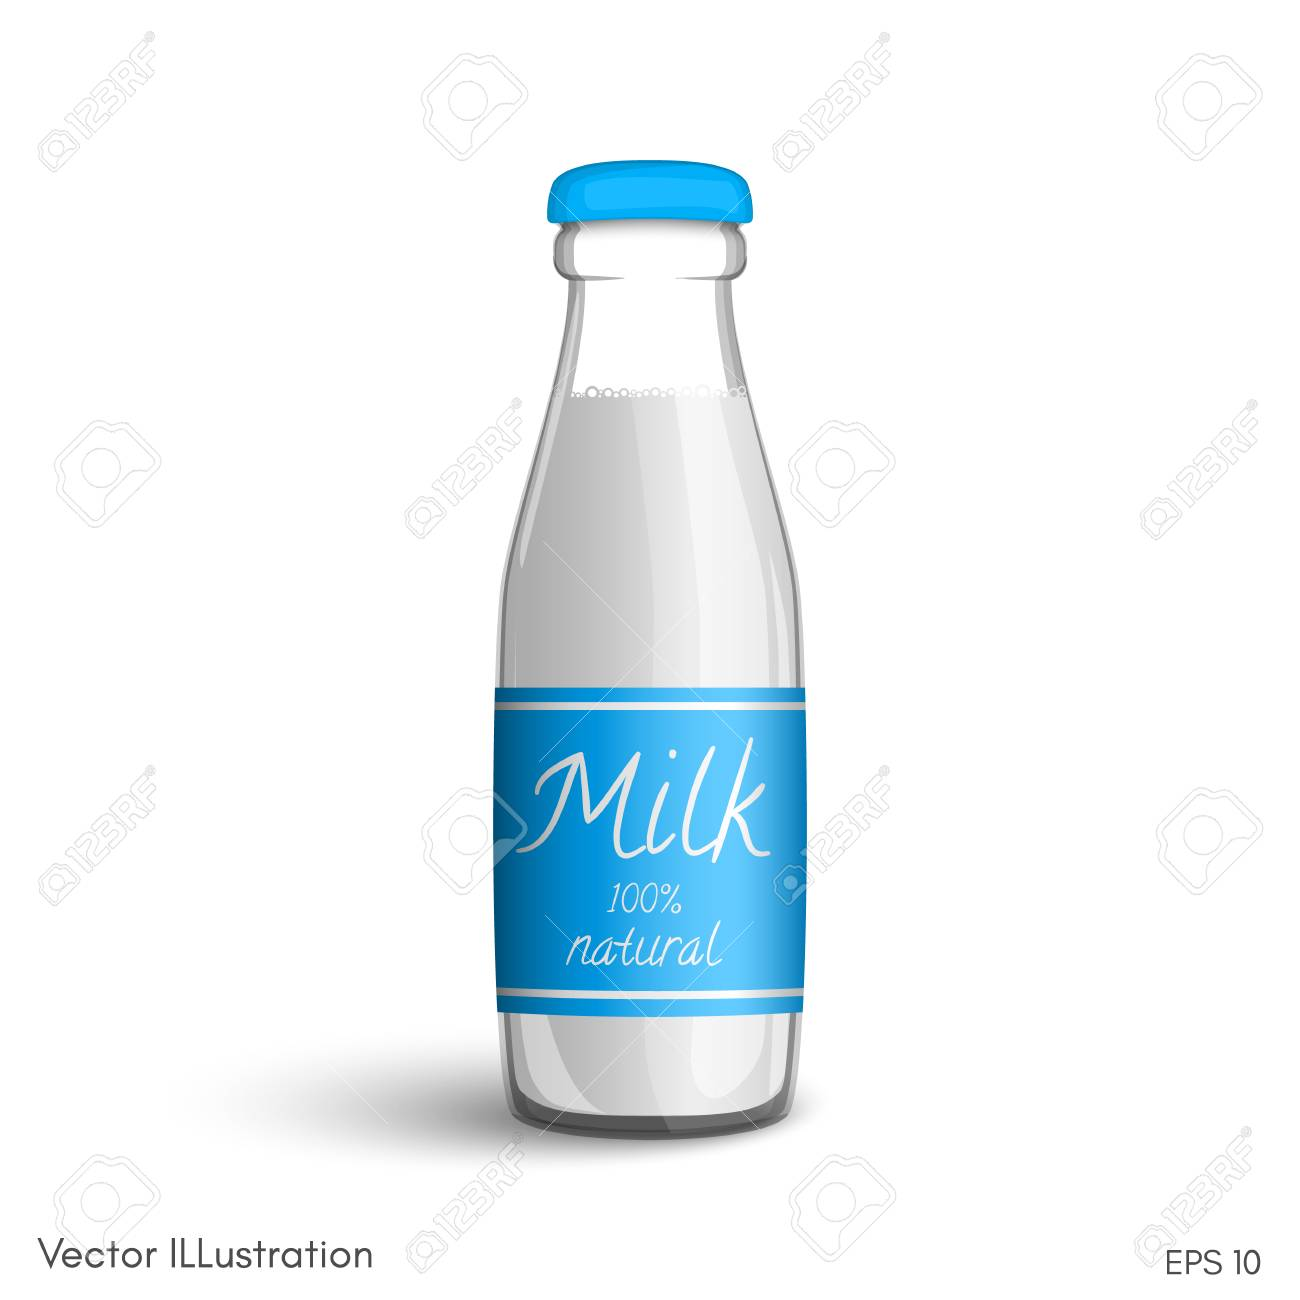 Transparent Glass Bottle Of Milk With A Label On A White Background Royalty Free Cliparts Vectors And Stock Illustration Image 70938952